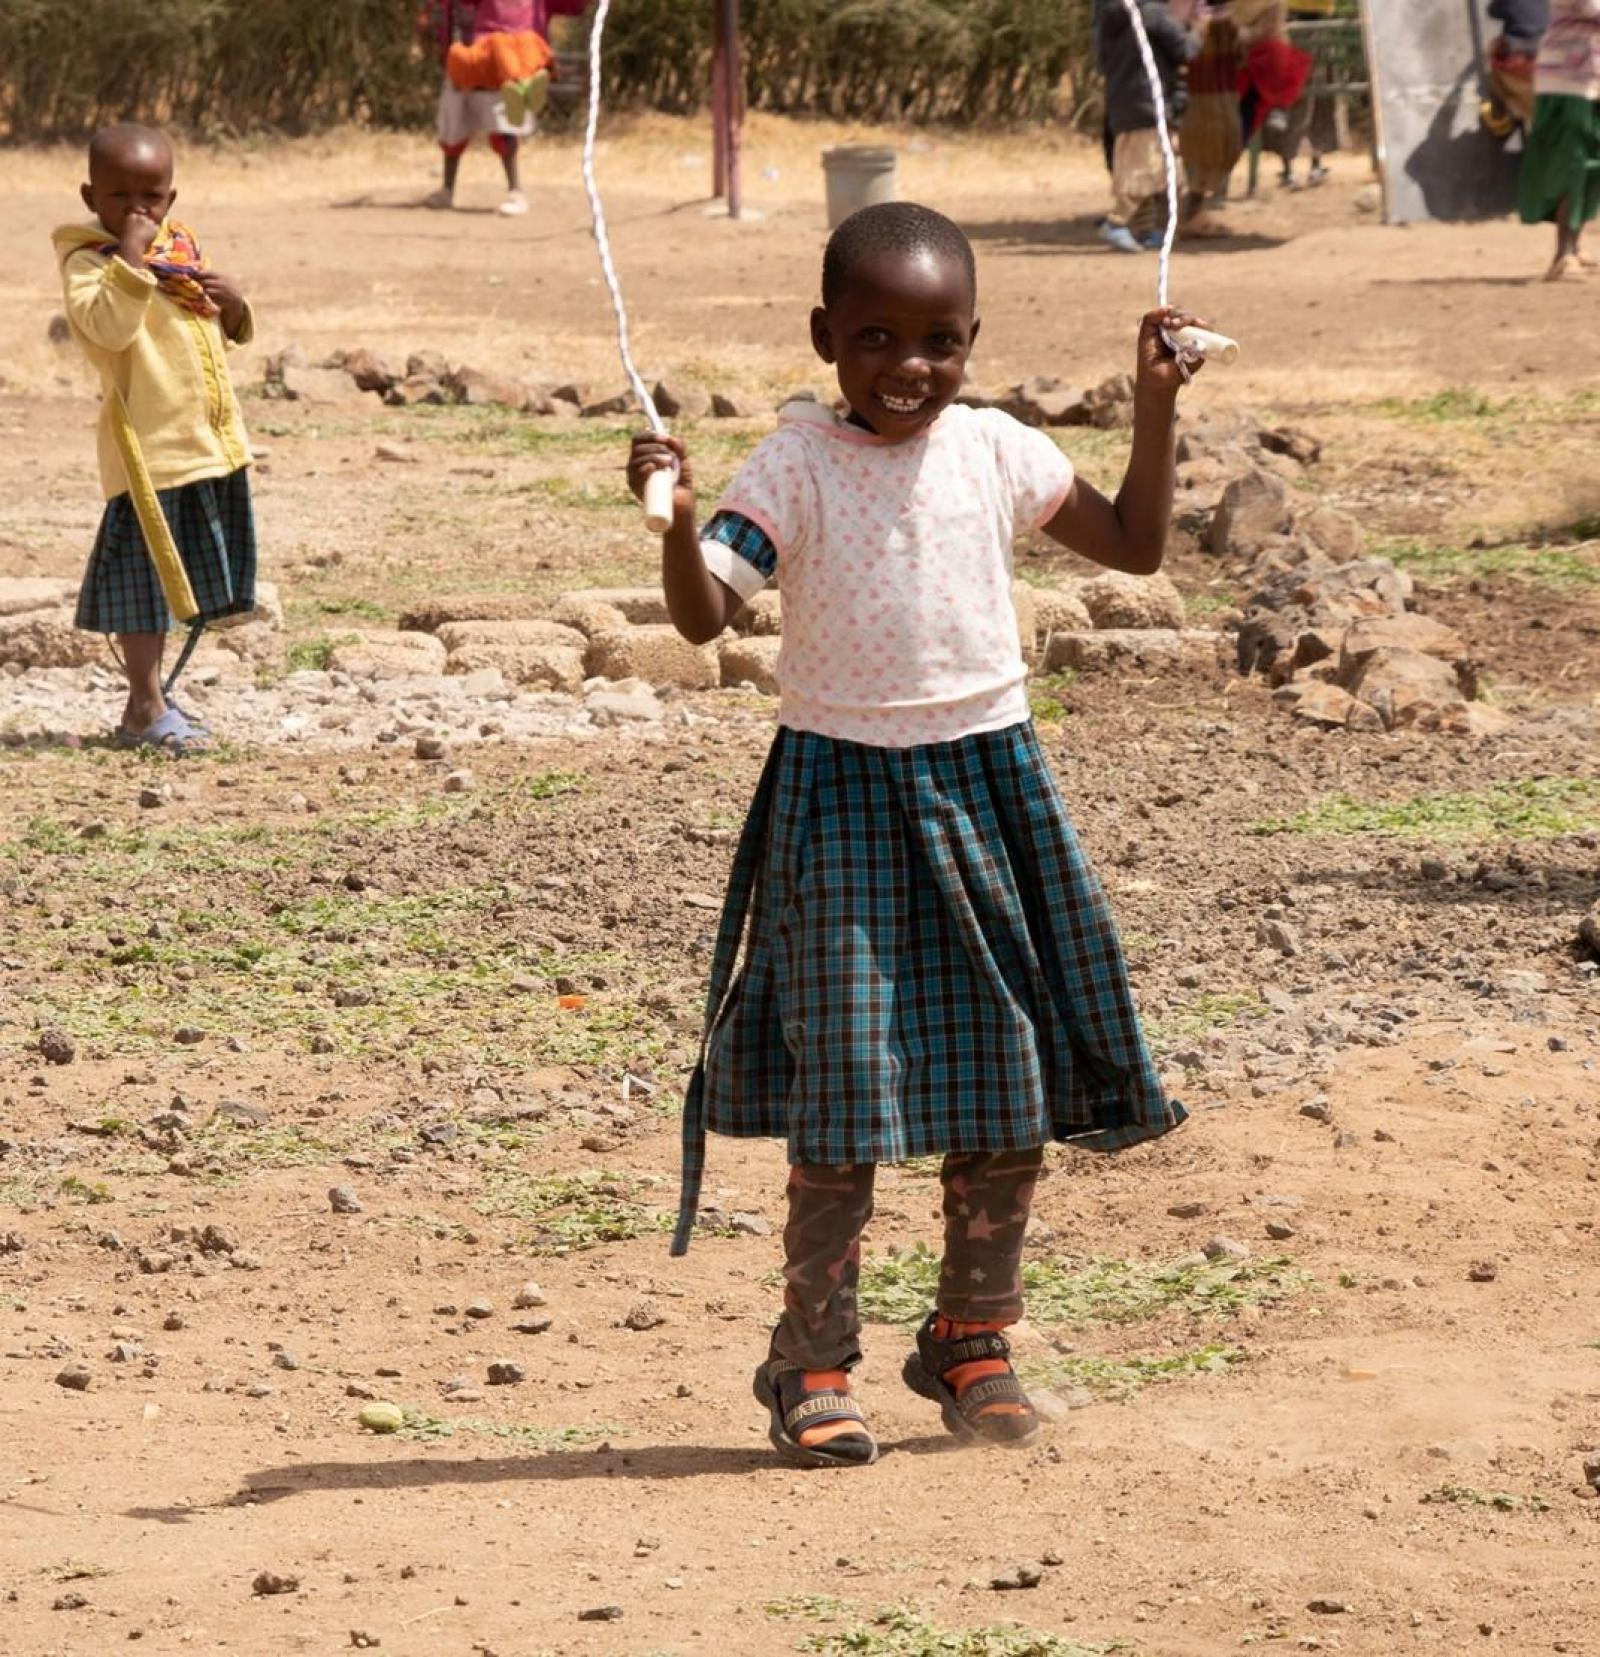 A child skipping at a school in Tanzania